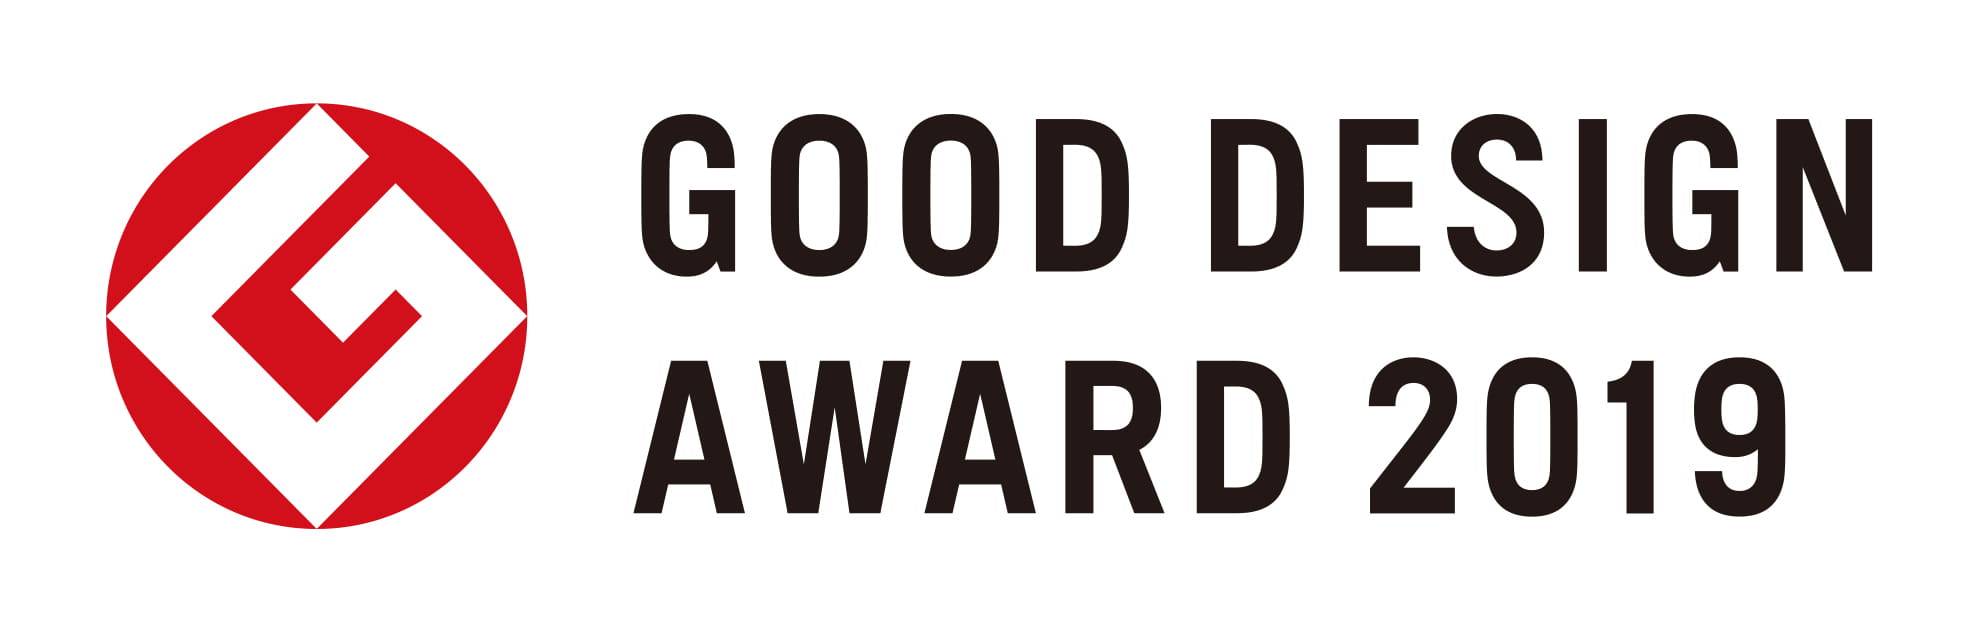 Good Design Award Logo 2019